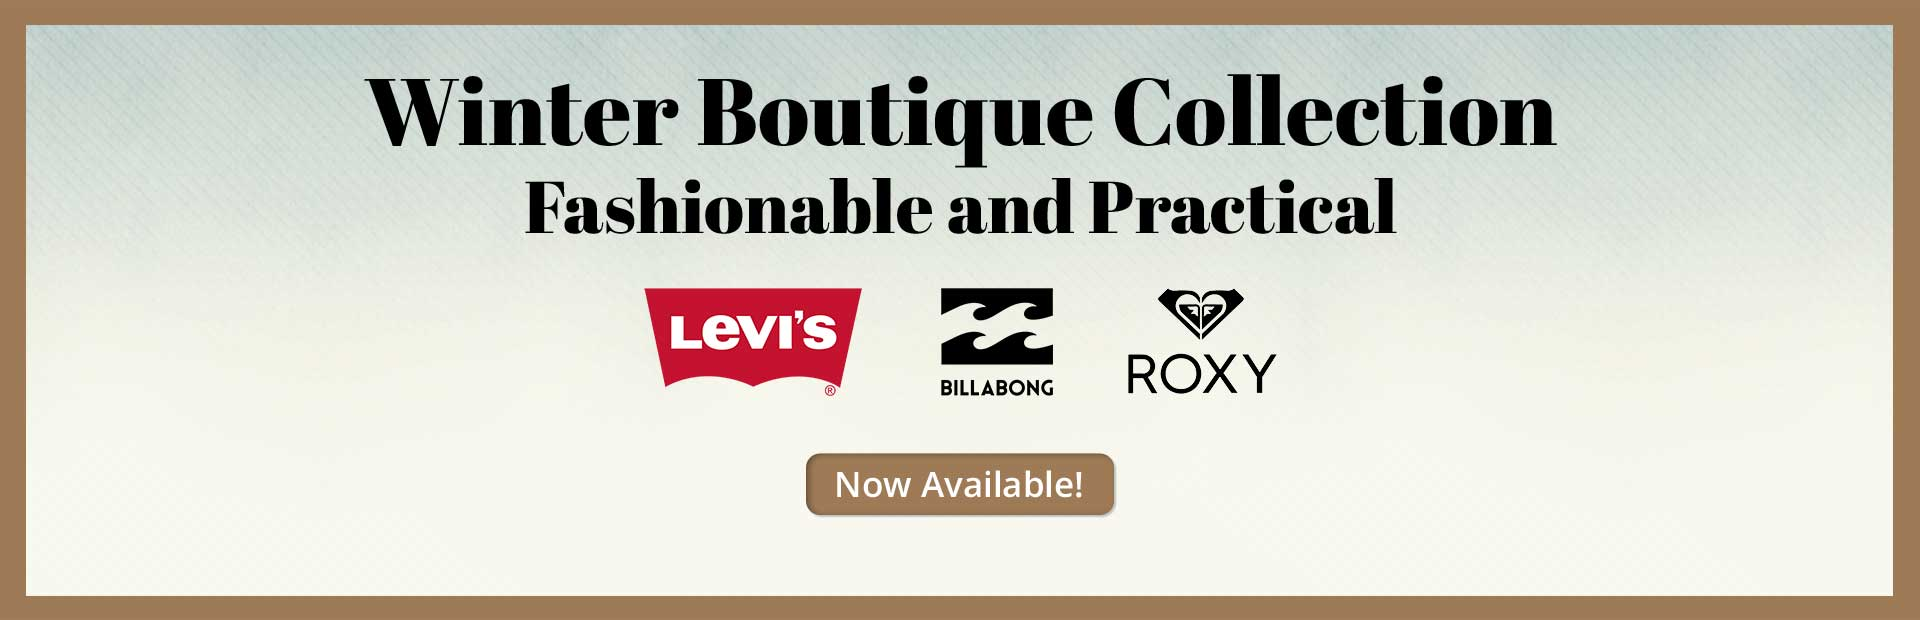 Winter Boutique Collection Now Available: Click here for details.